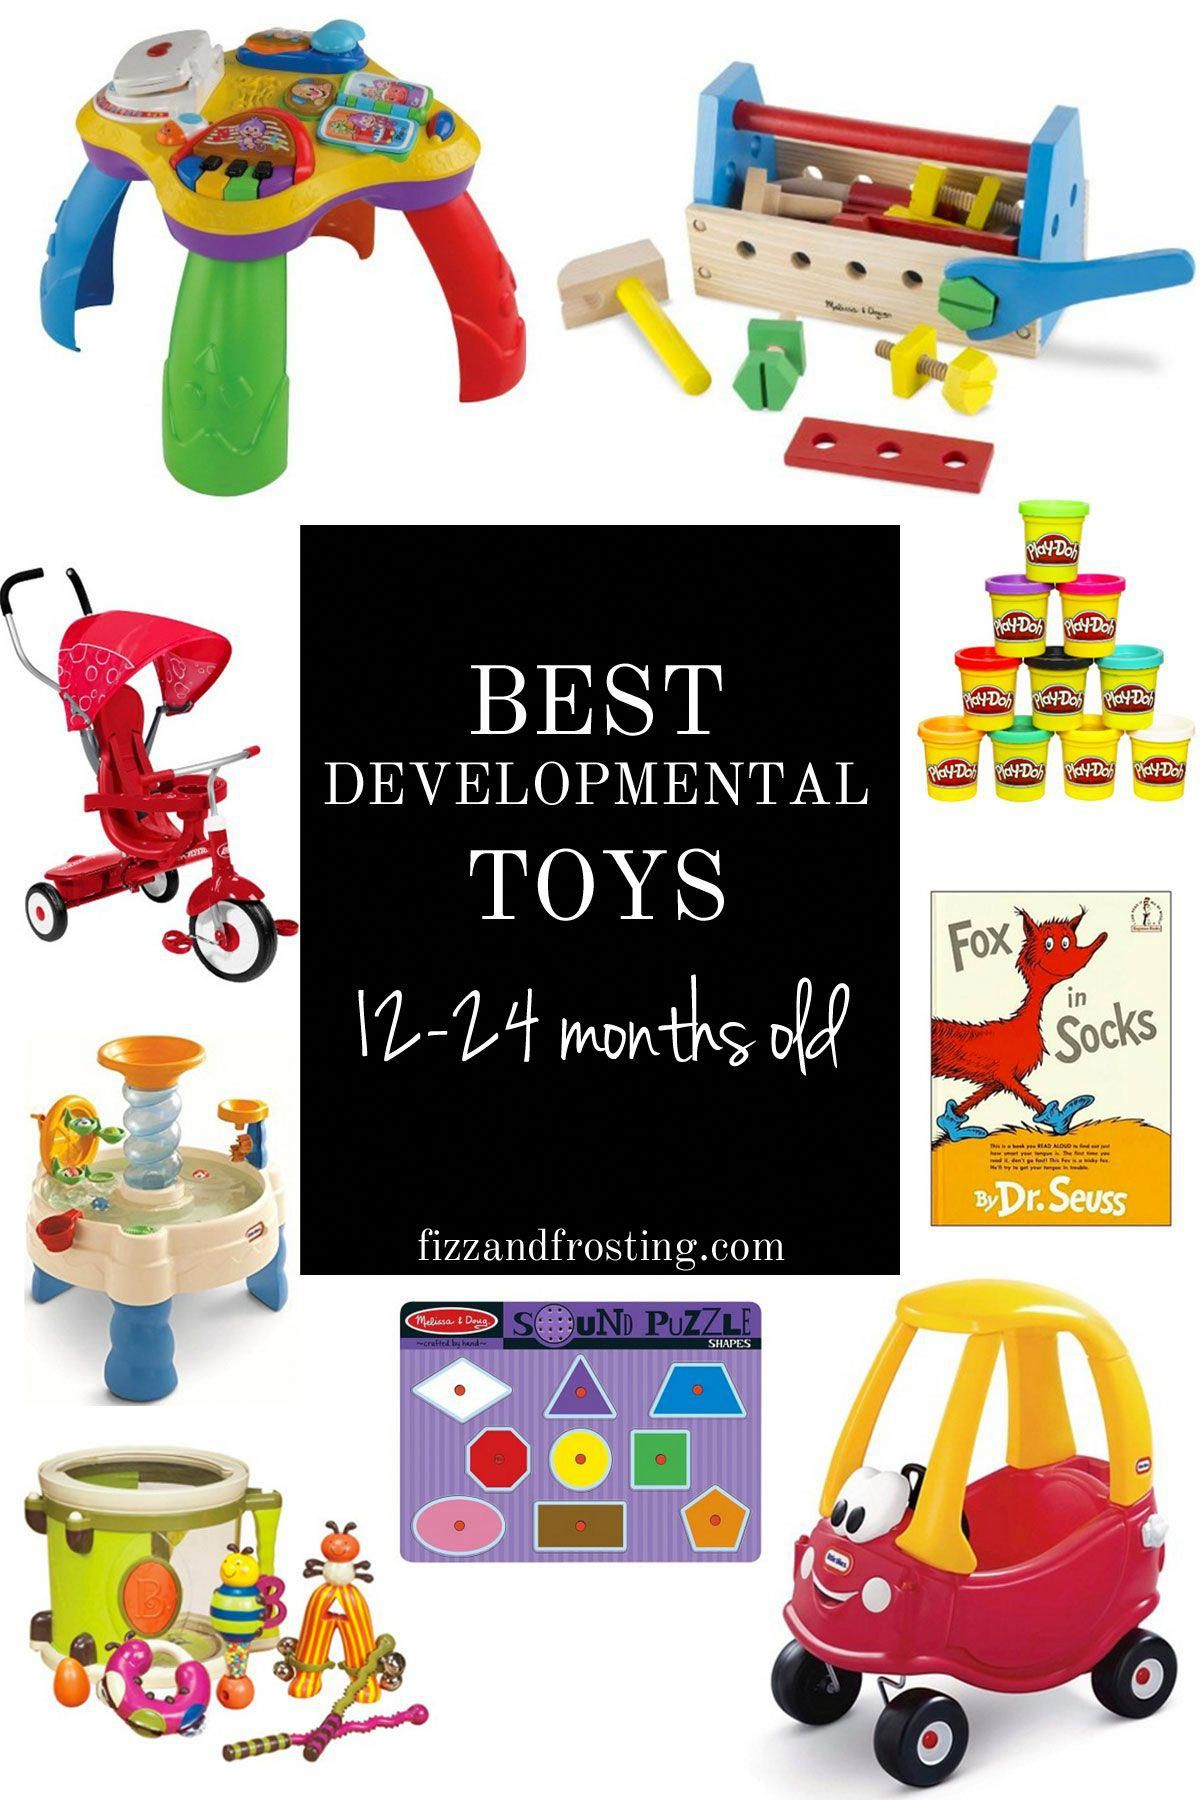 best educational toys for 12-24 months | www ...